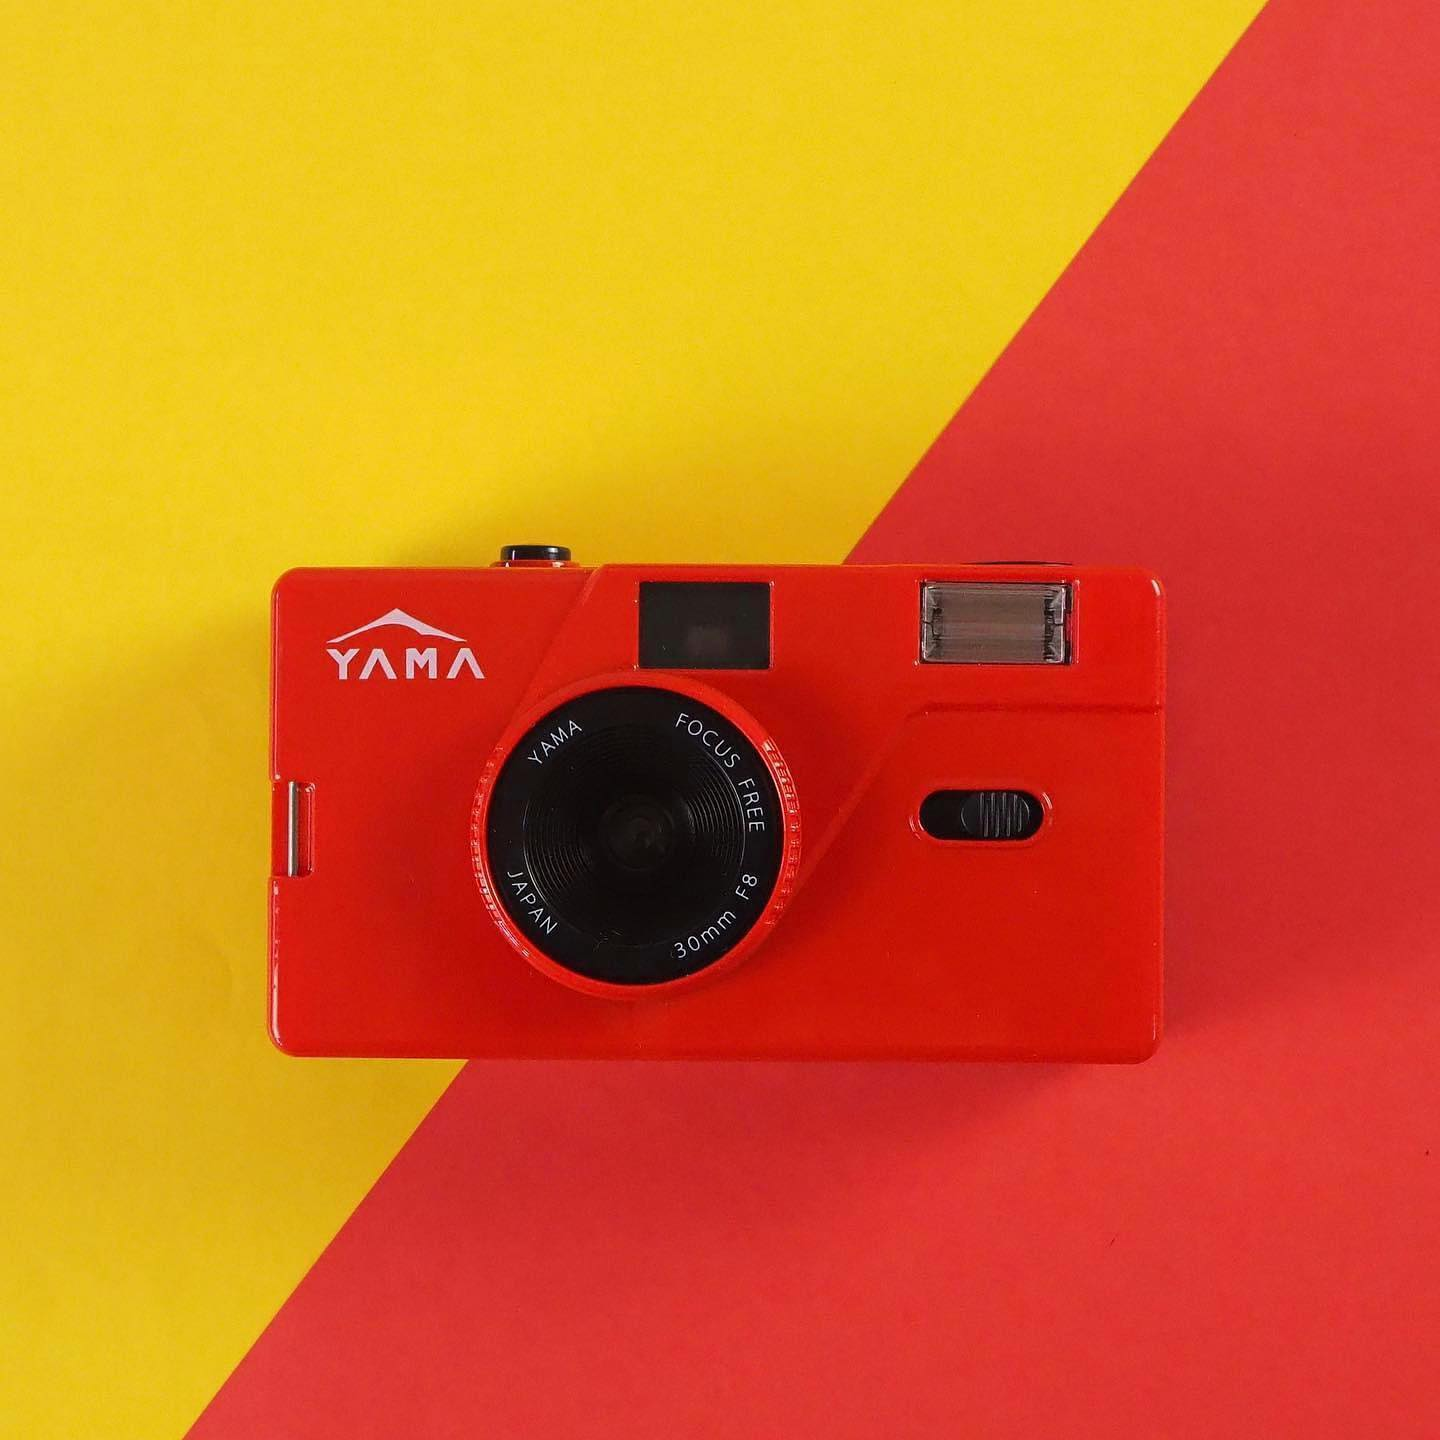 Yama Memo M20 35mm Film Camera (Red)